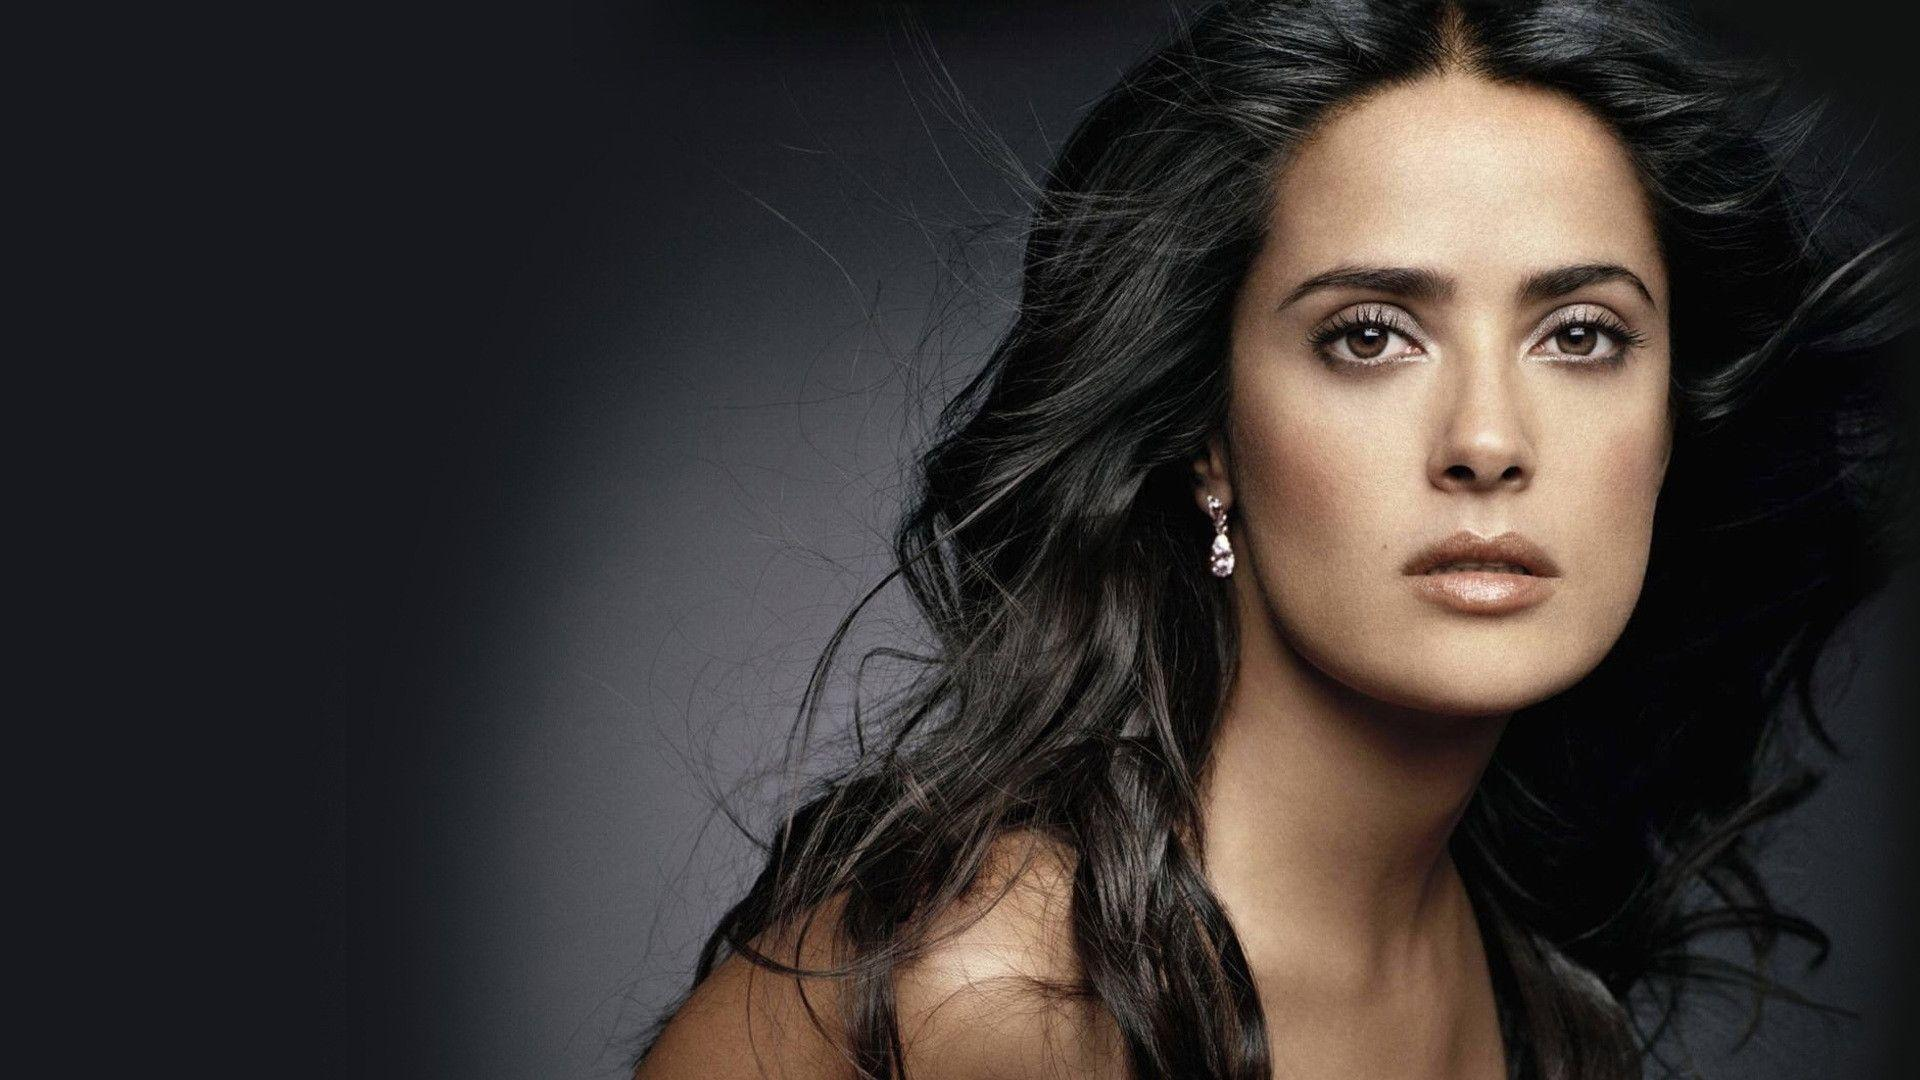 Salma Hayek wallpaper - 671898